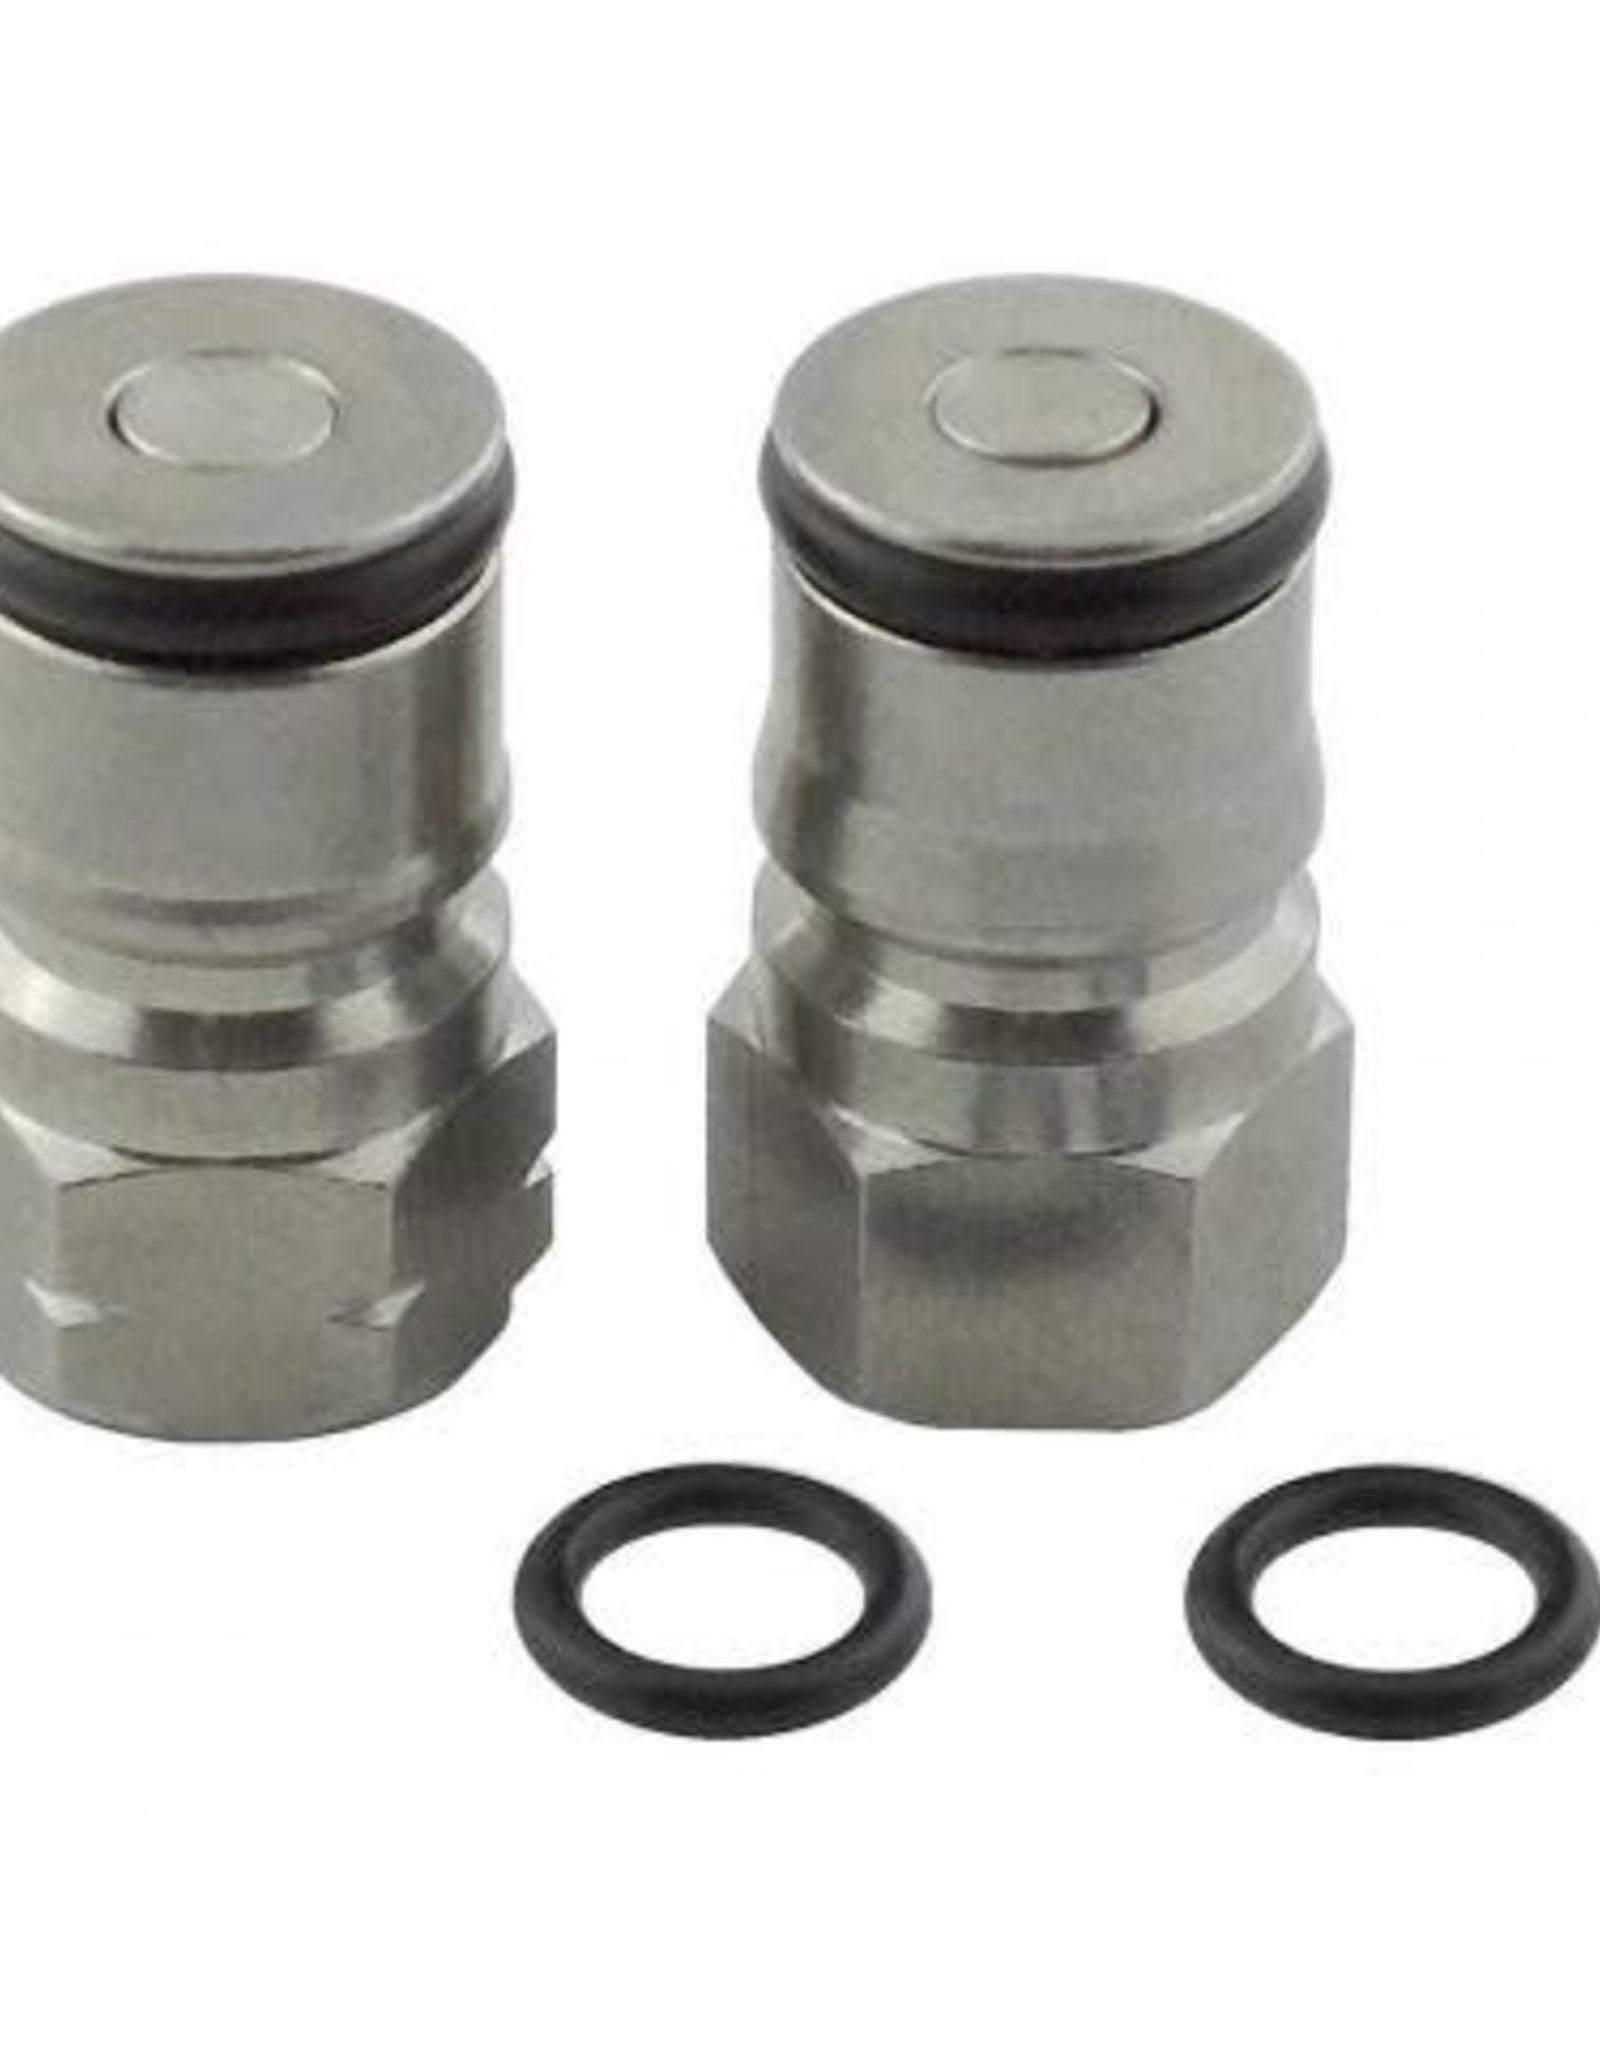 Pin Lock to Ball Lock Conversion Plugs For Firestone Product Tanks